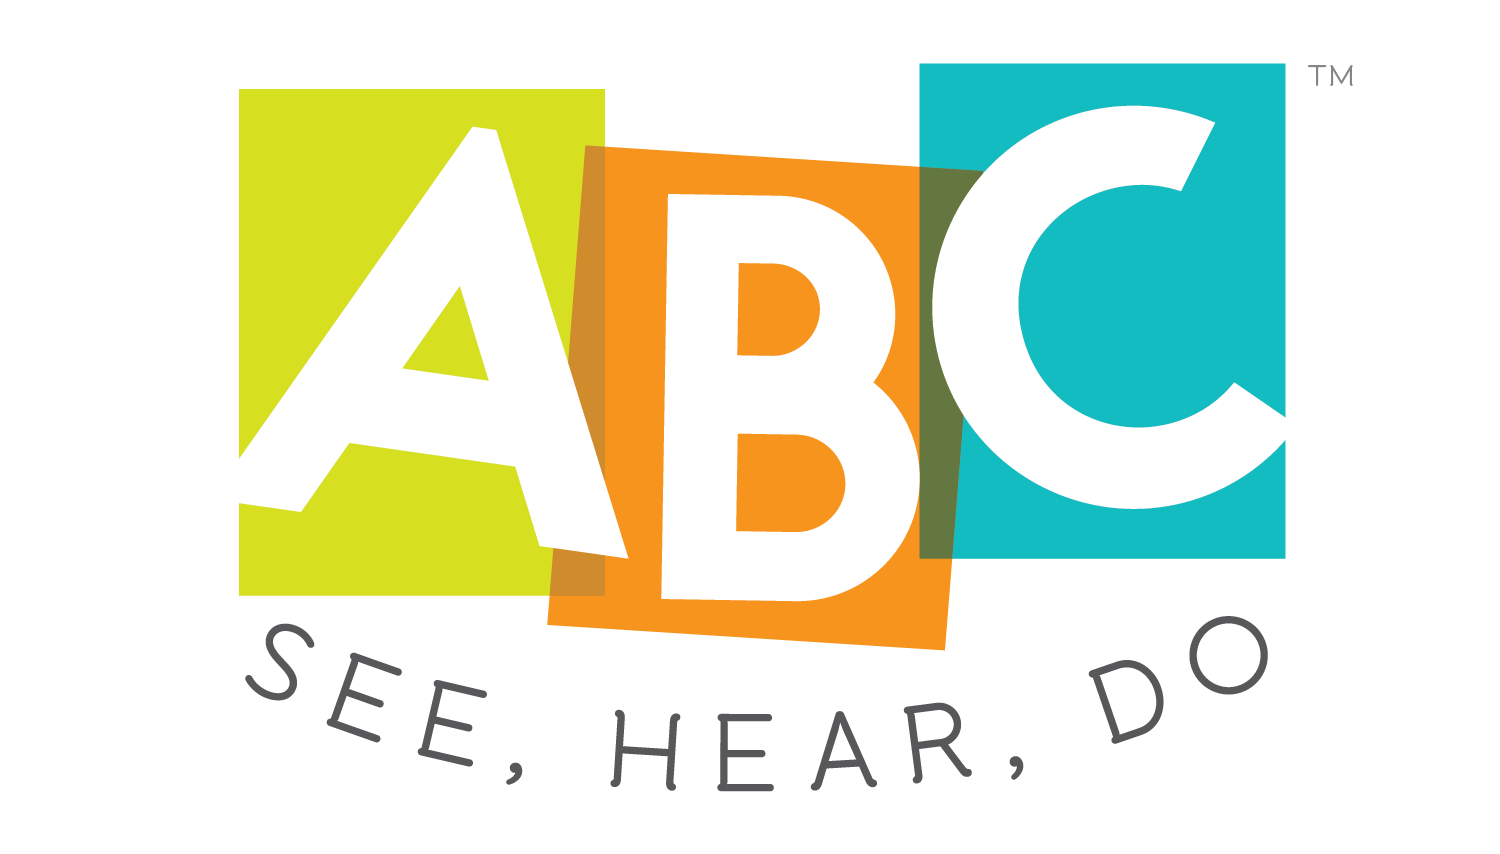 ABC See, Hear, Do